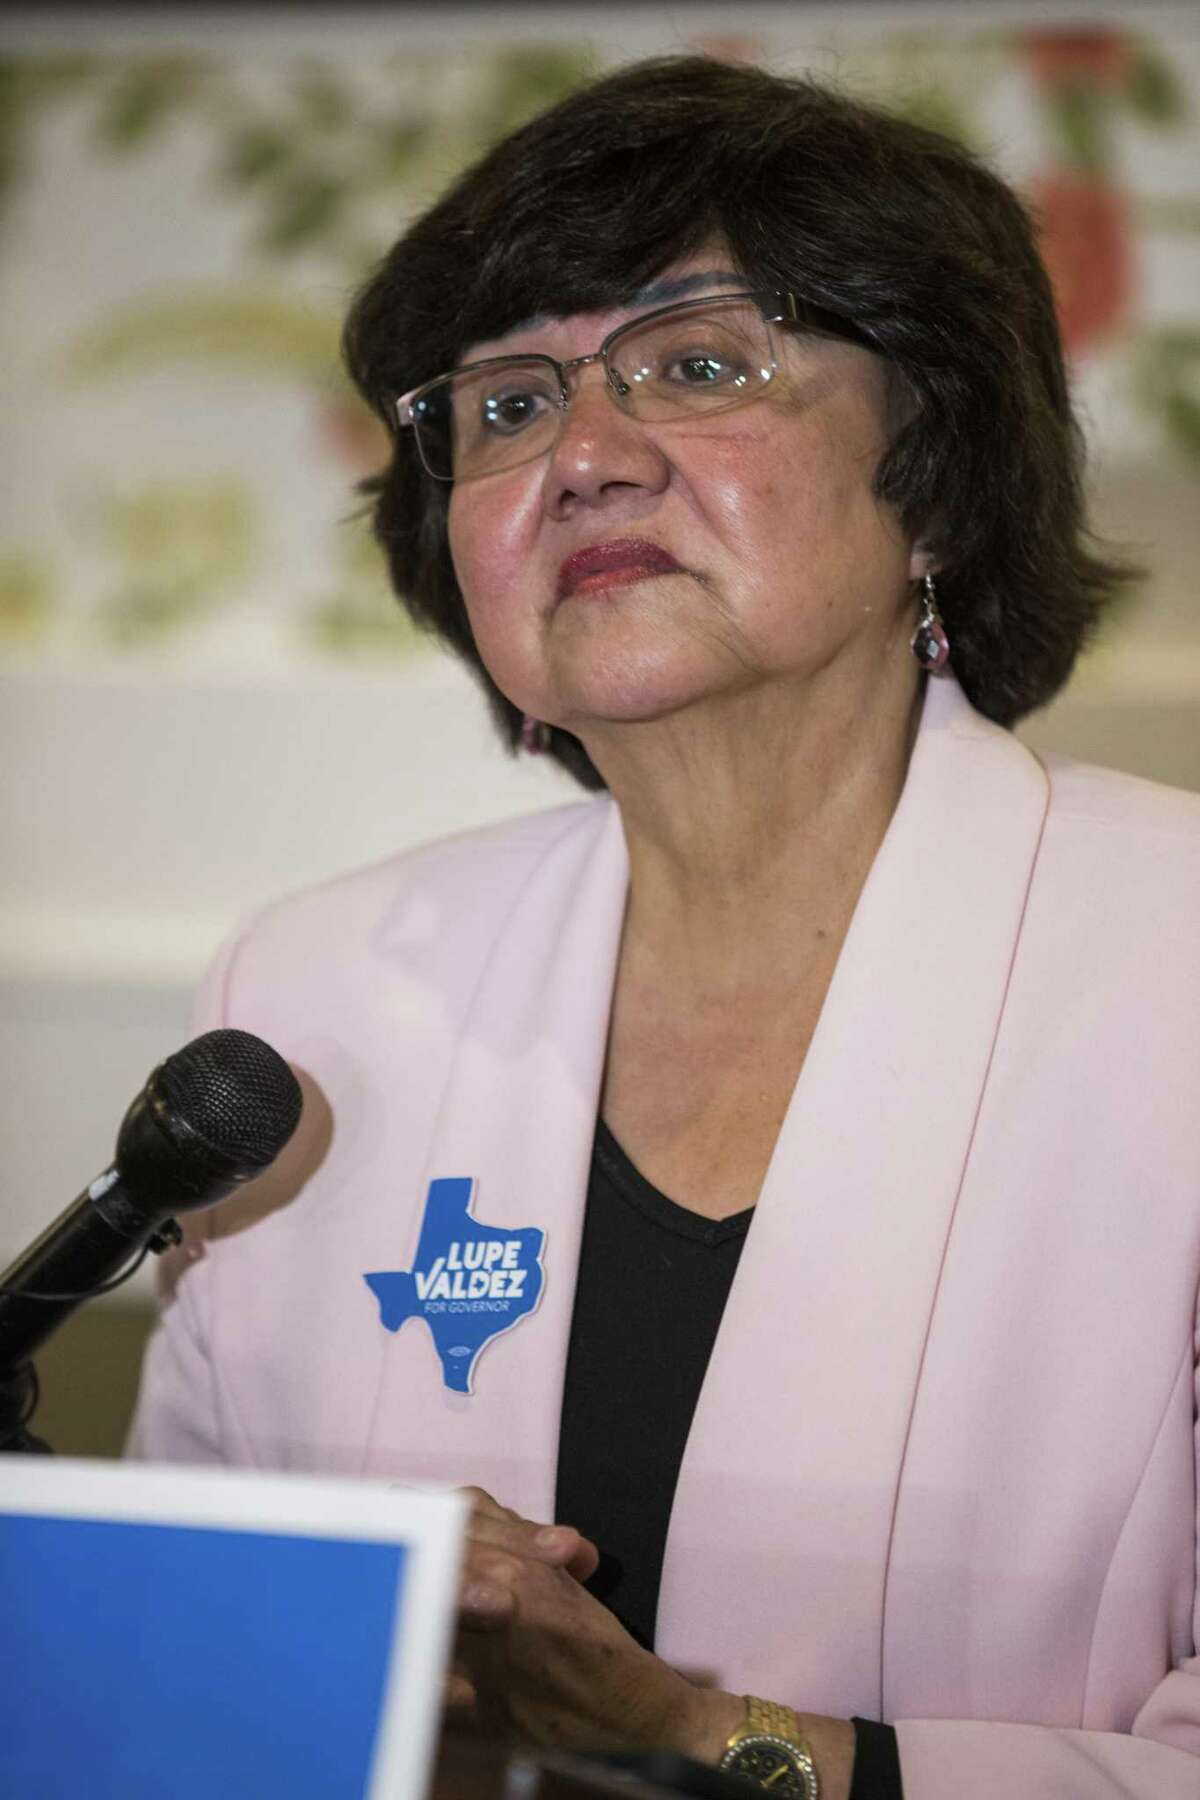 Gubernatorial candidate and former Dallas County Sheriff Lupe Valdez speaks after her runoff win at a Democratic party celebration at Ellen's in Dallas.